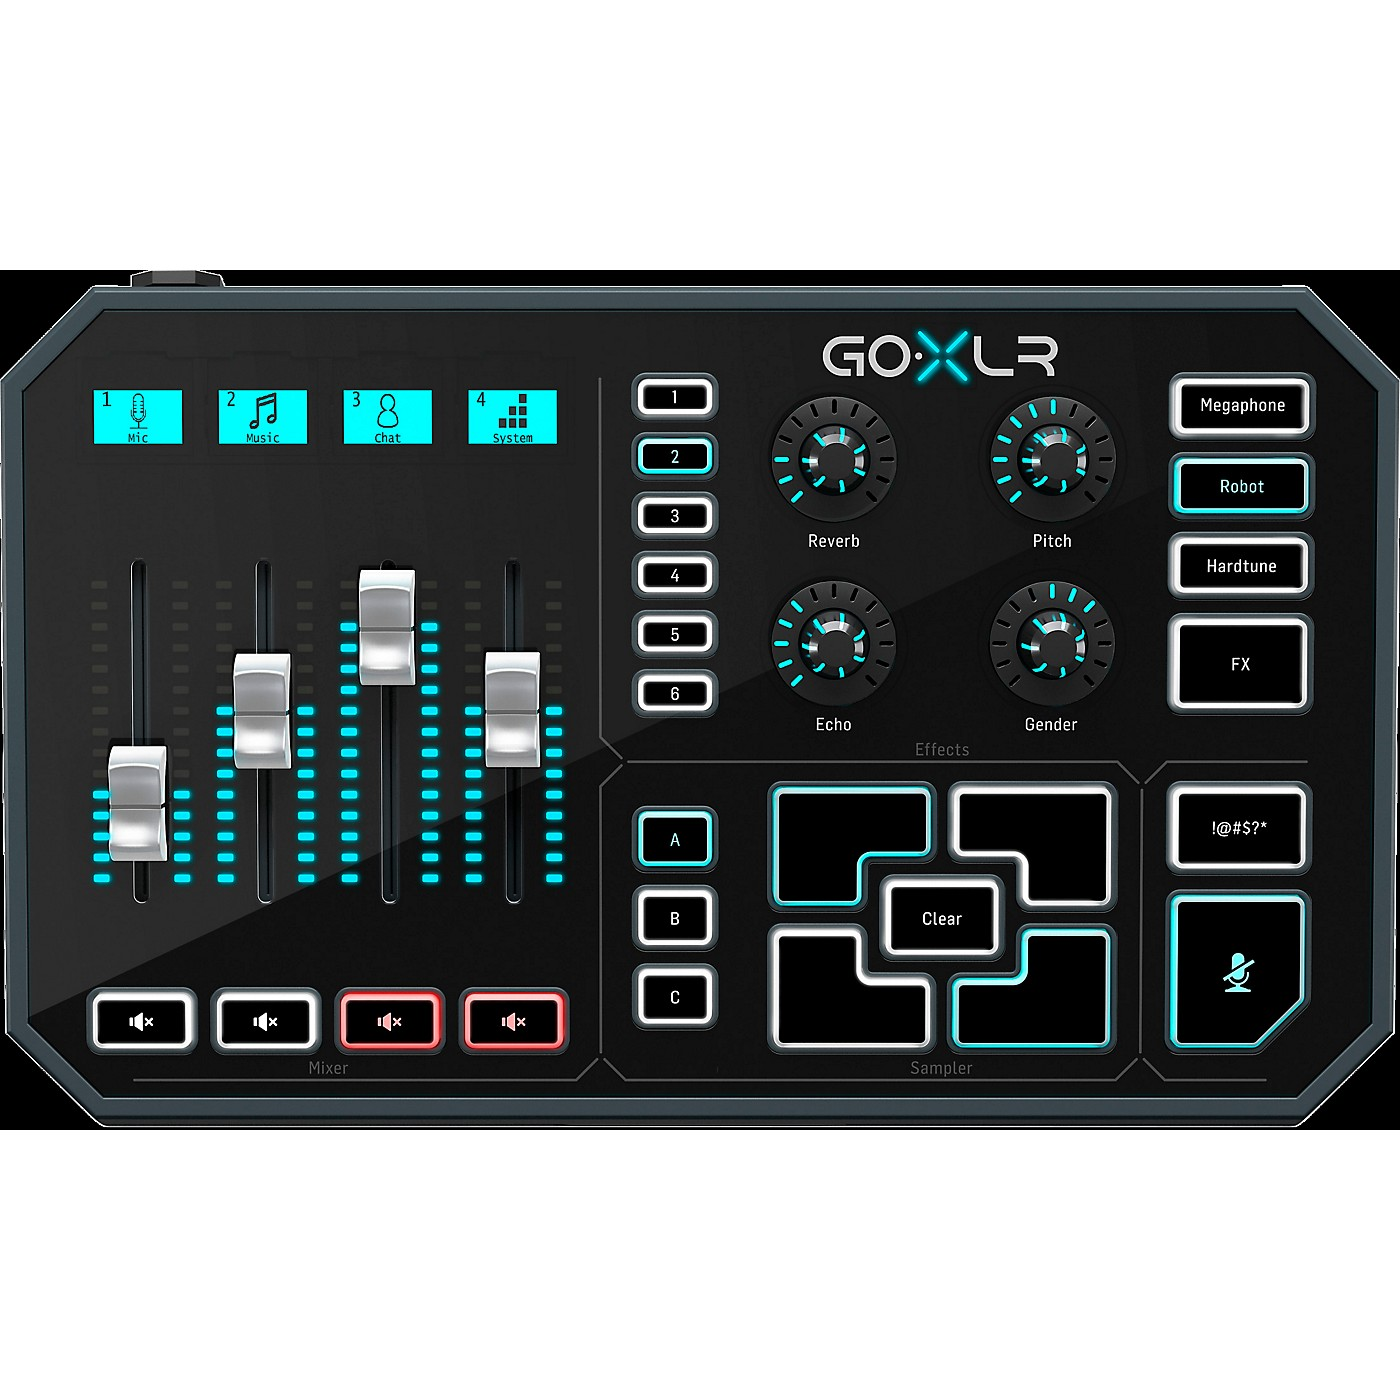 TC Helicon GoXLR - Mixer, Sampler, & Voice FX for Streamers thumbnail